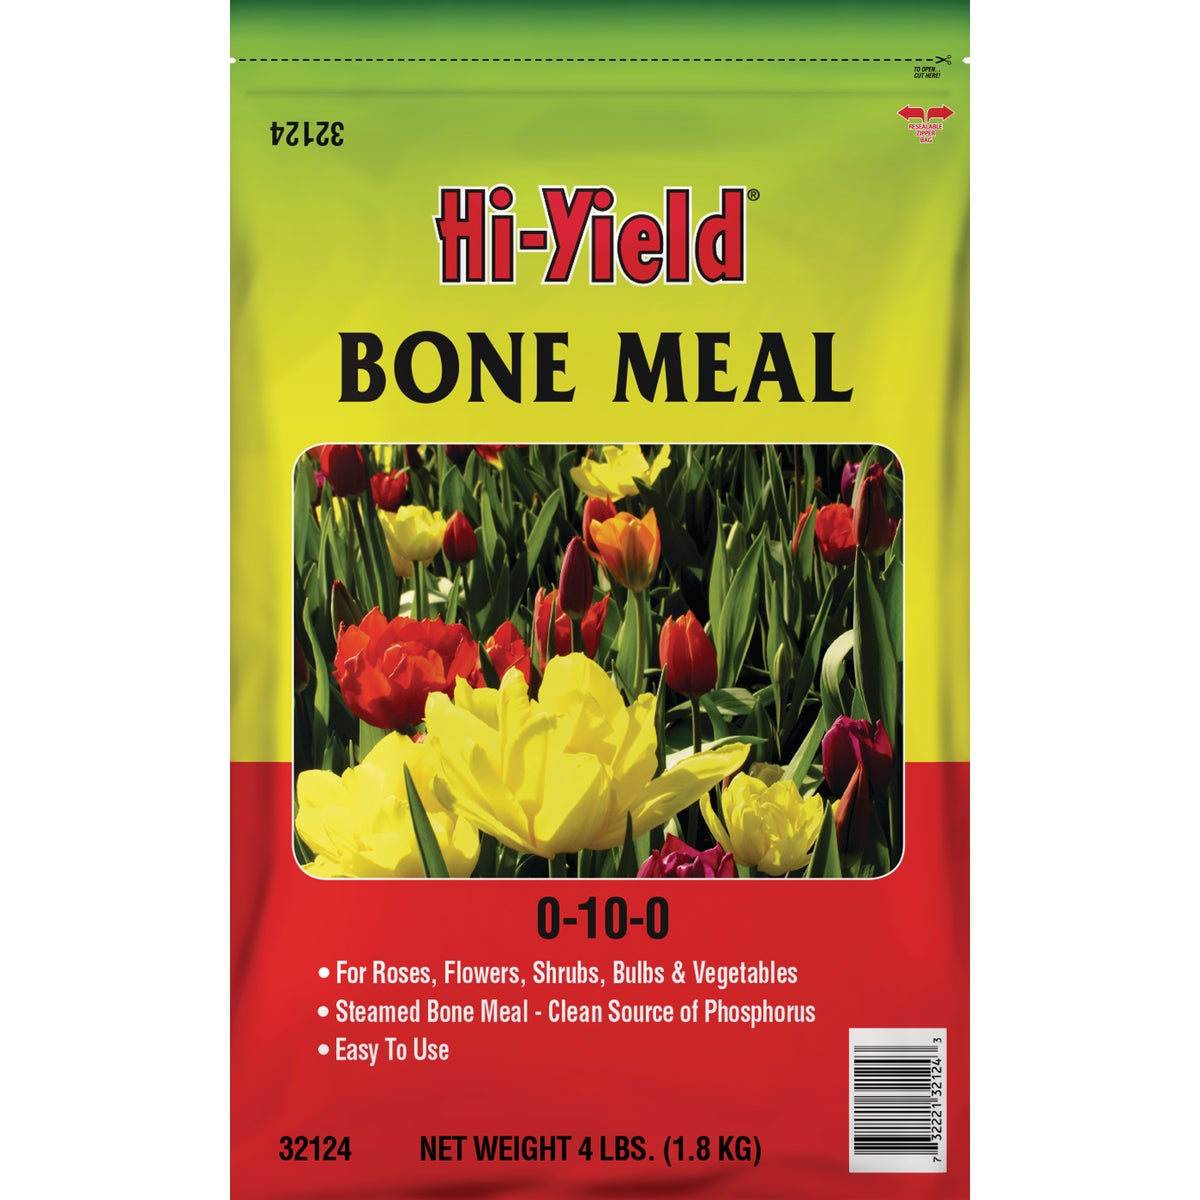 4LB BONE MEAL - 32124 by Vpg Fertilome